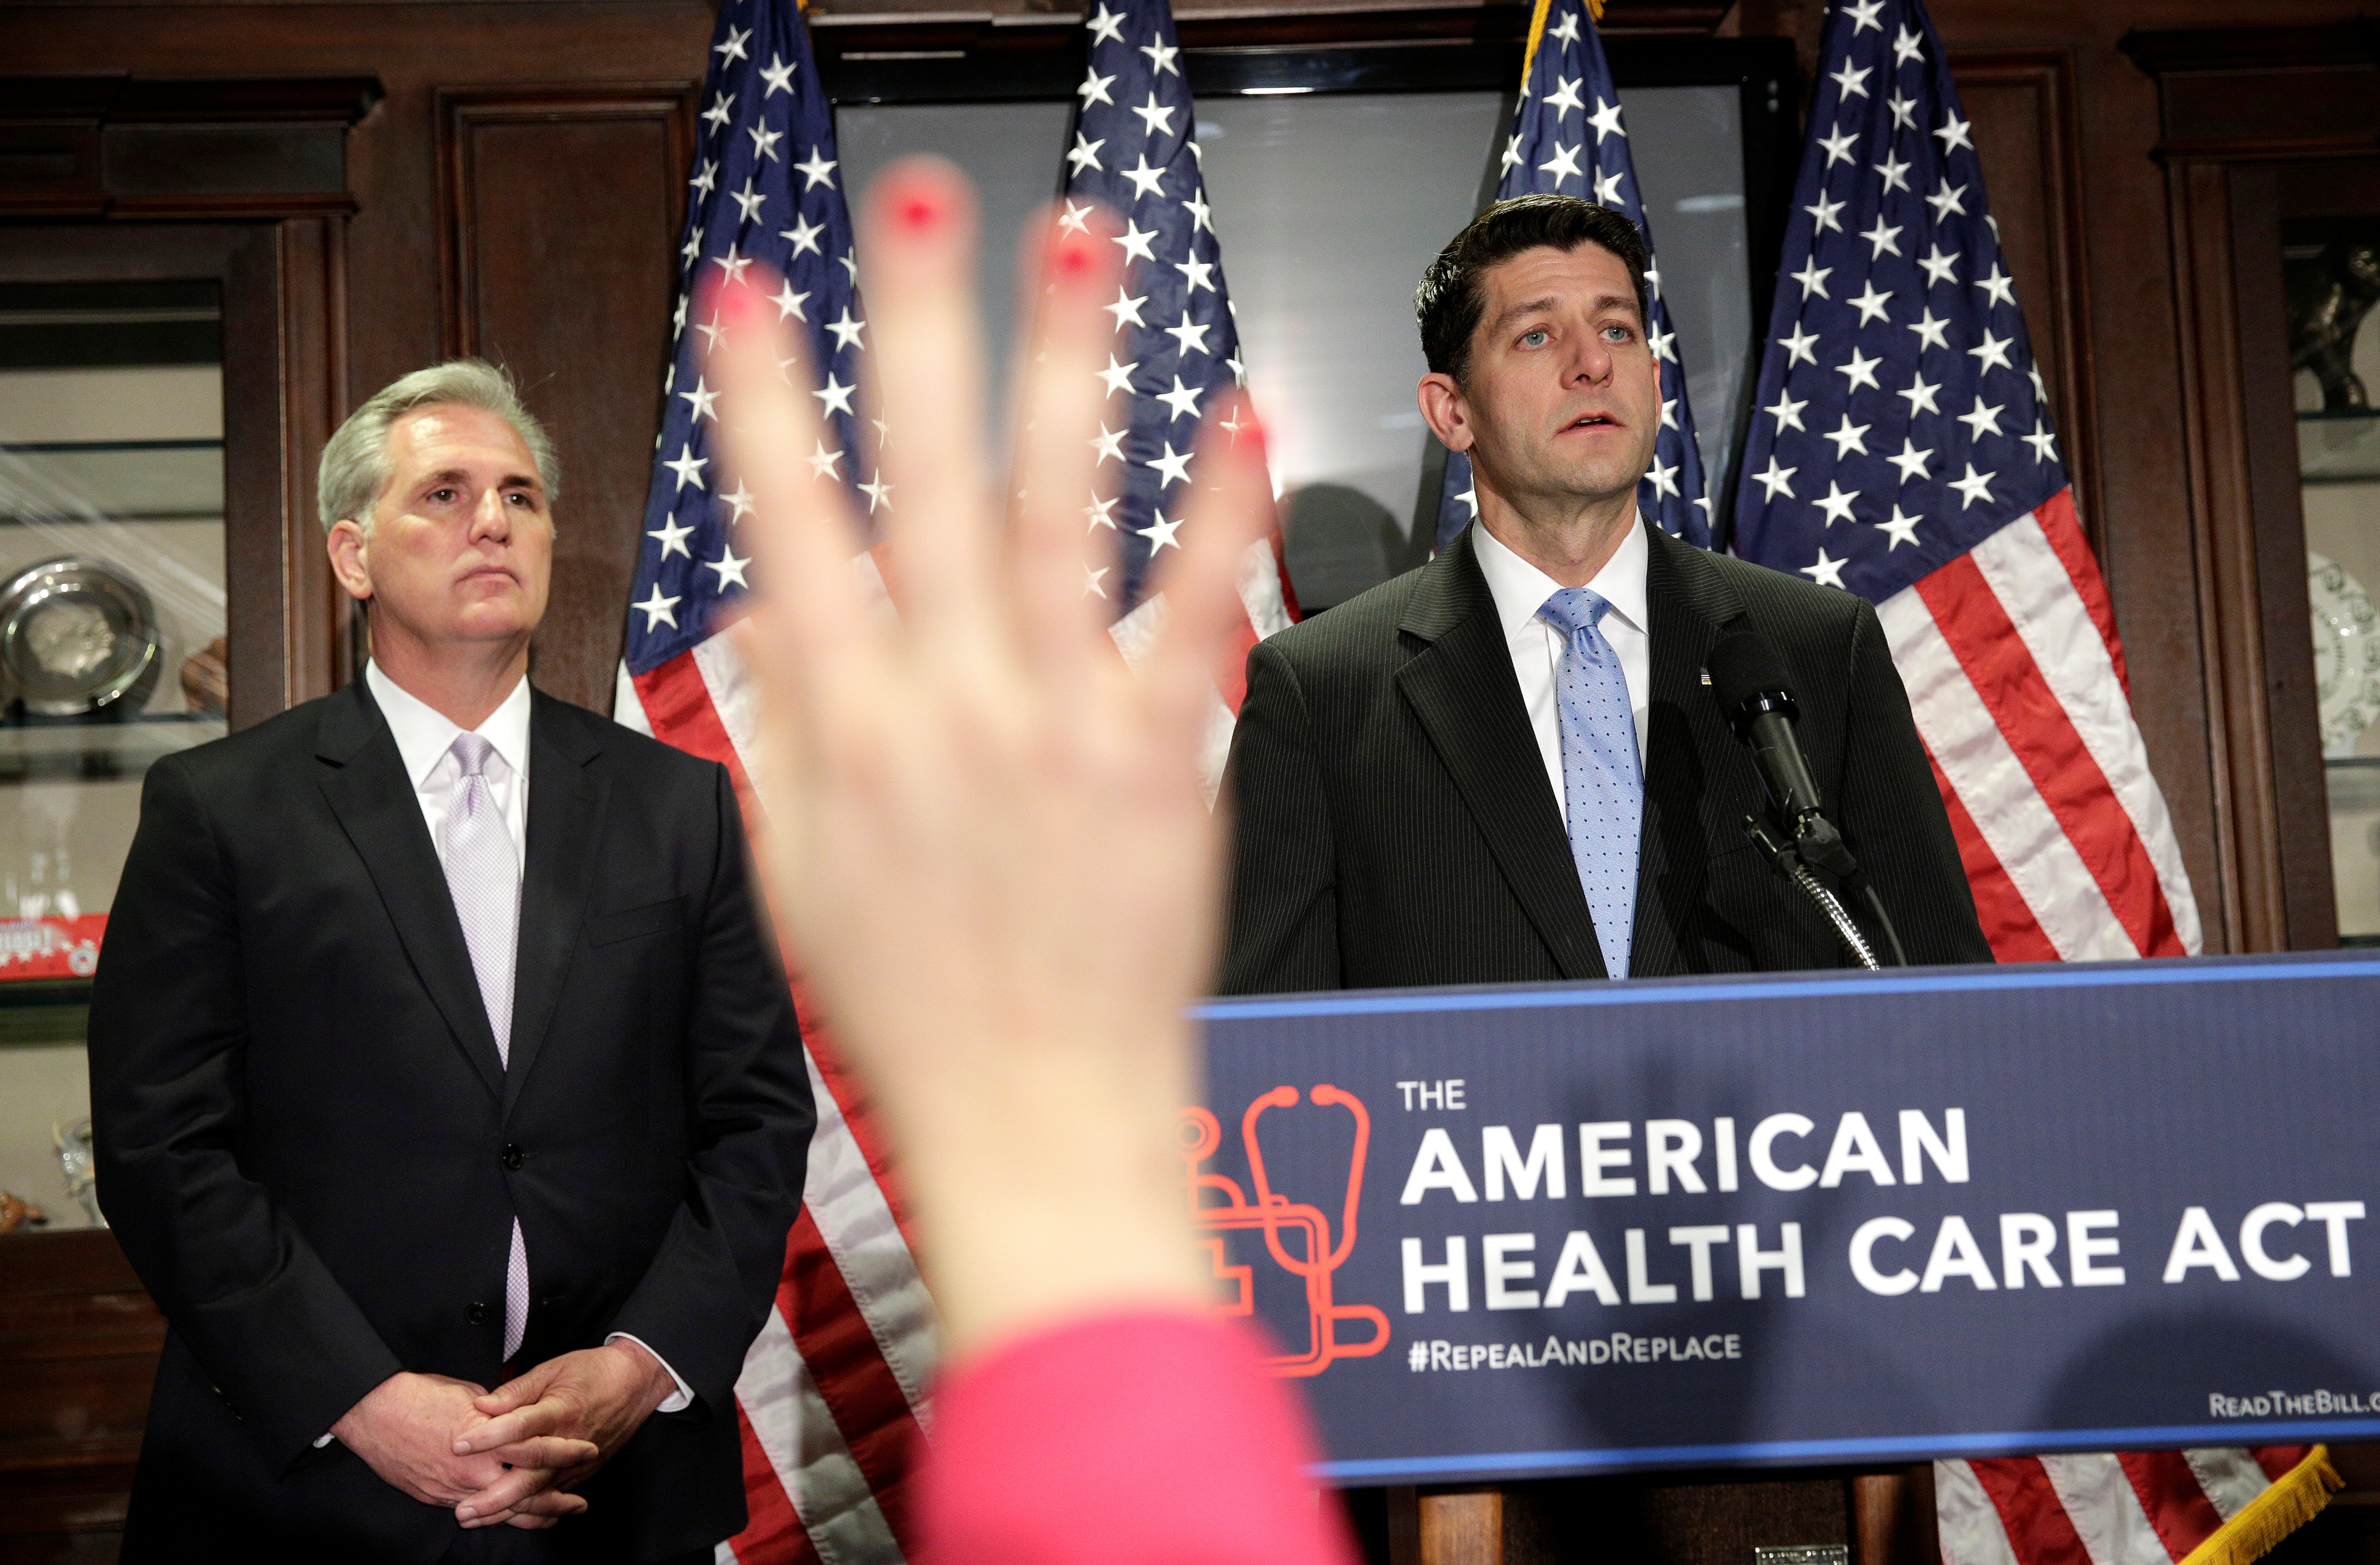 loren adler brookings institution expect the cbo to estimate large coverage losses from the gop health care plan